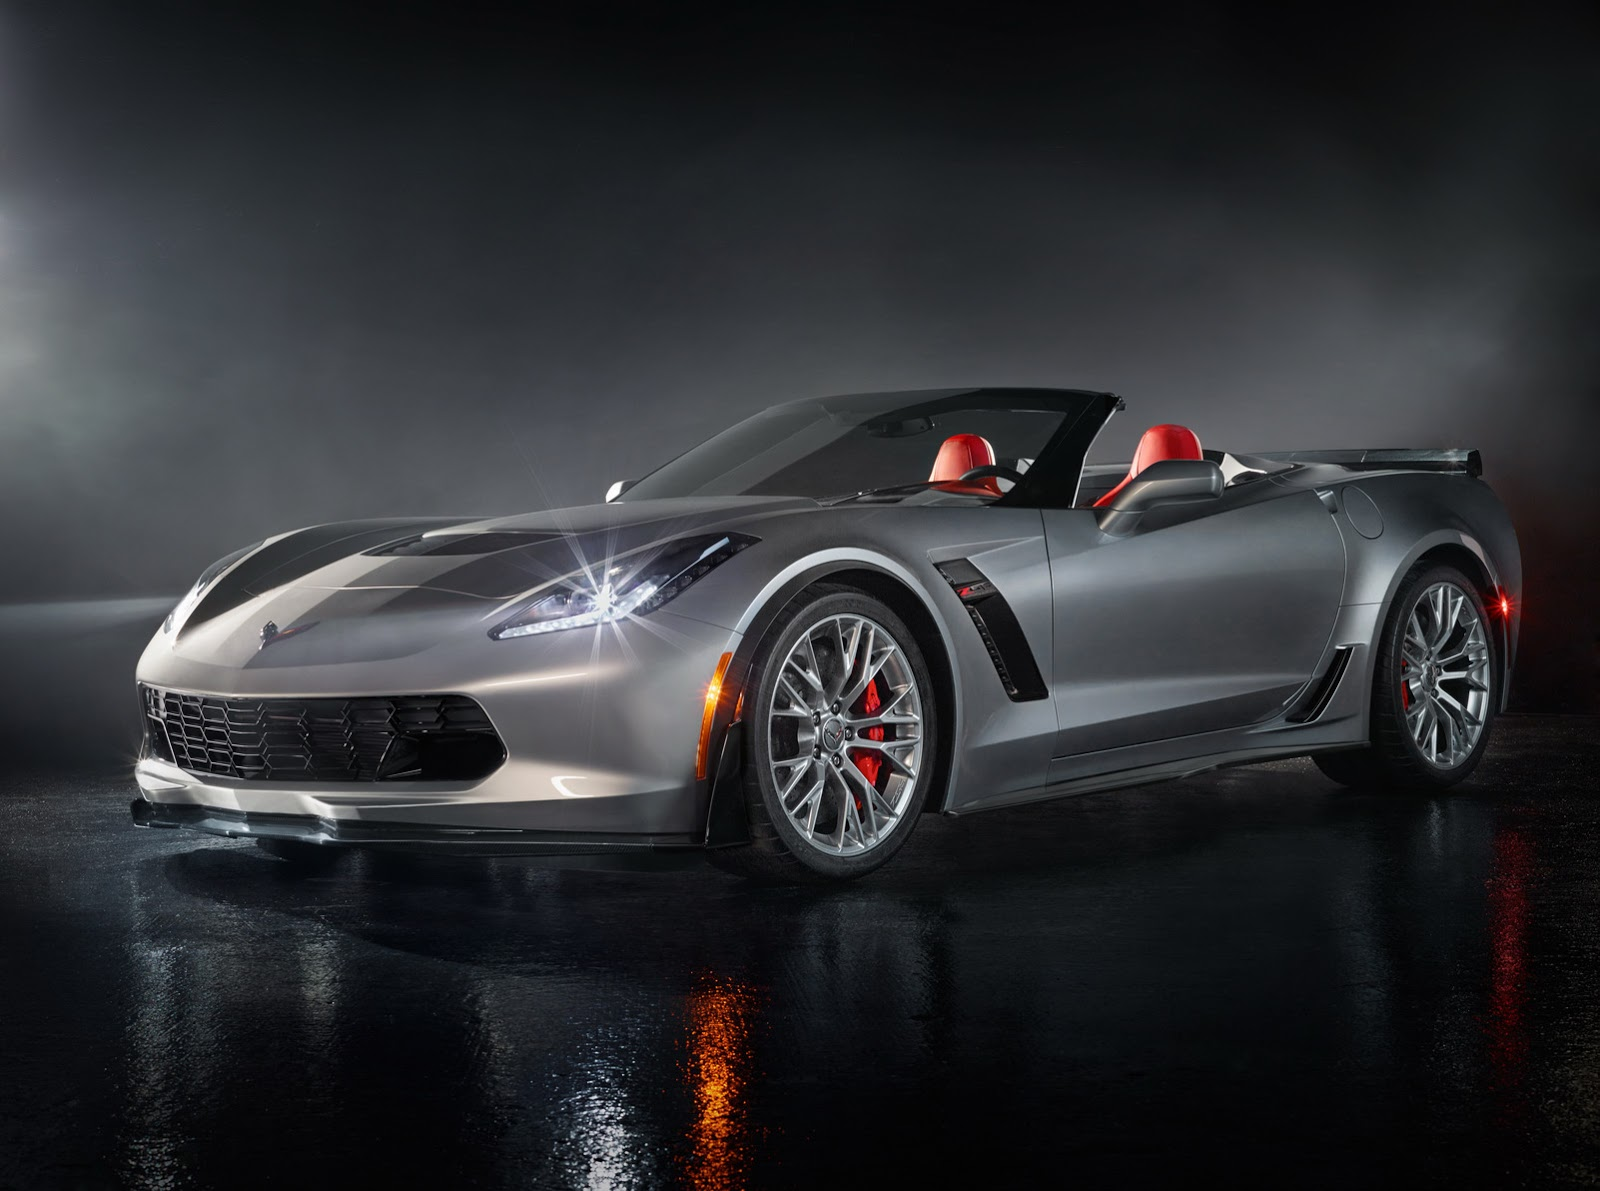 New 2015 Corvette Stingray Z06 is Bloody Fast, Hits 60mph in 2.95 Seconds!